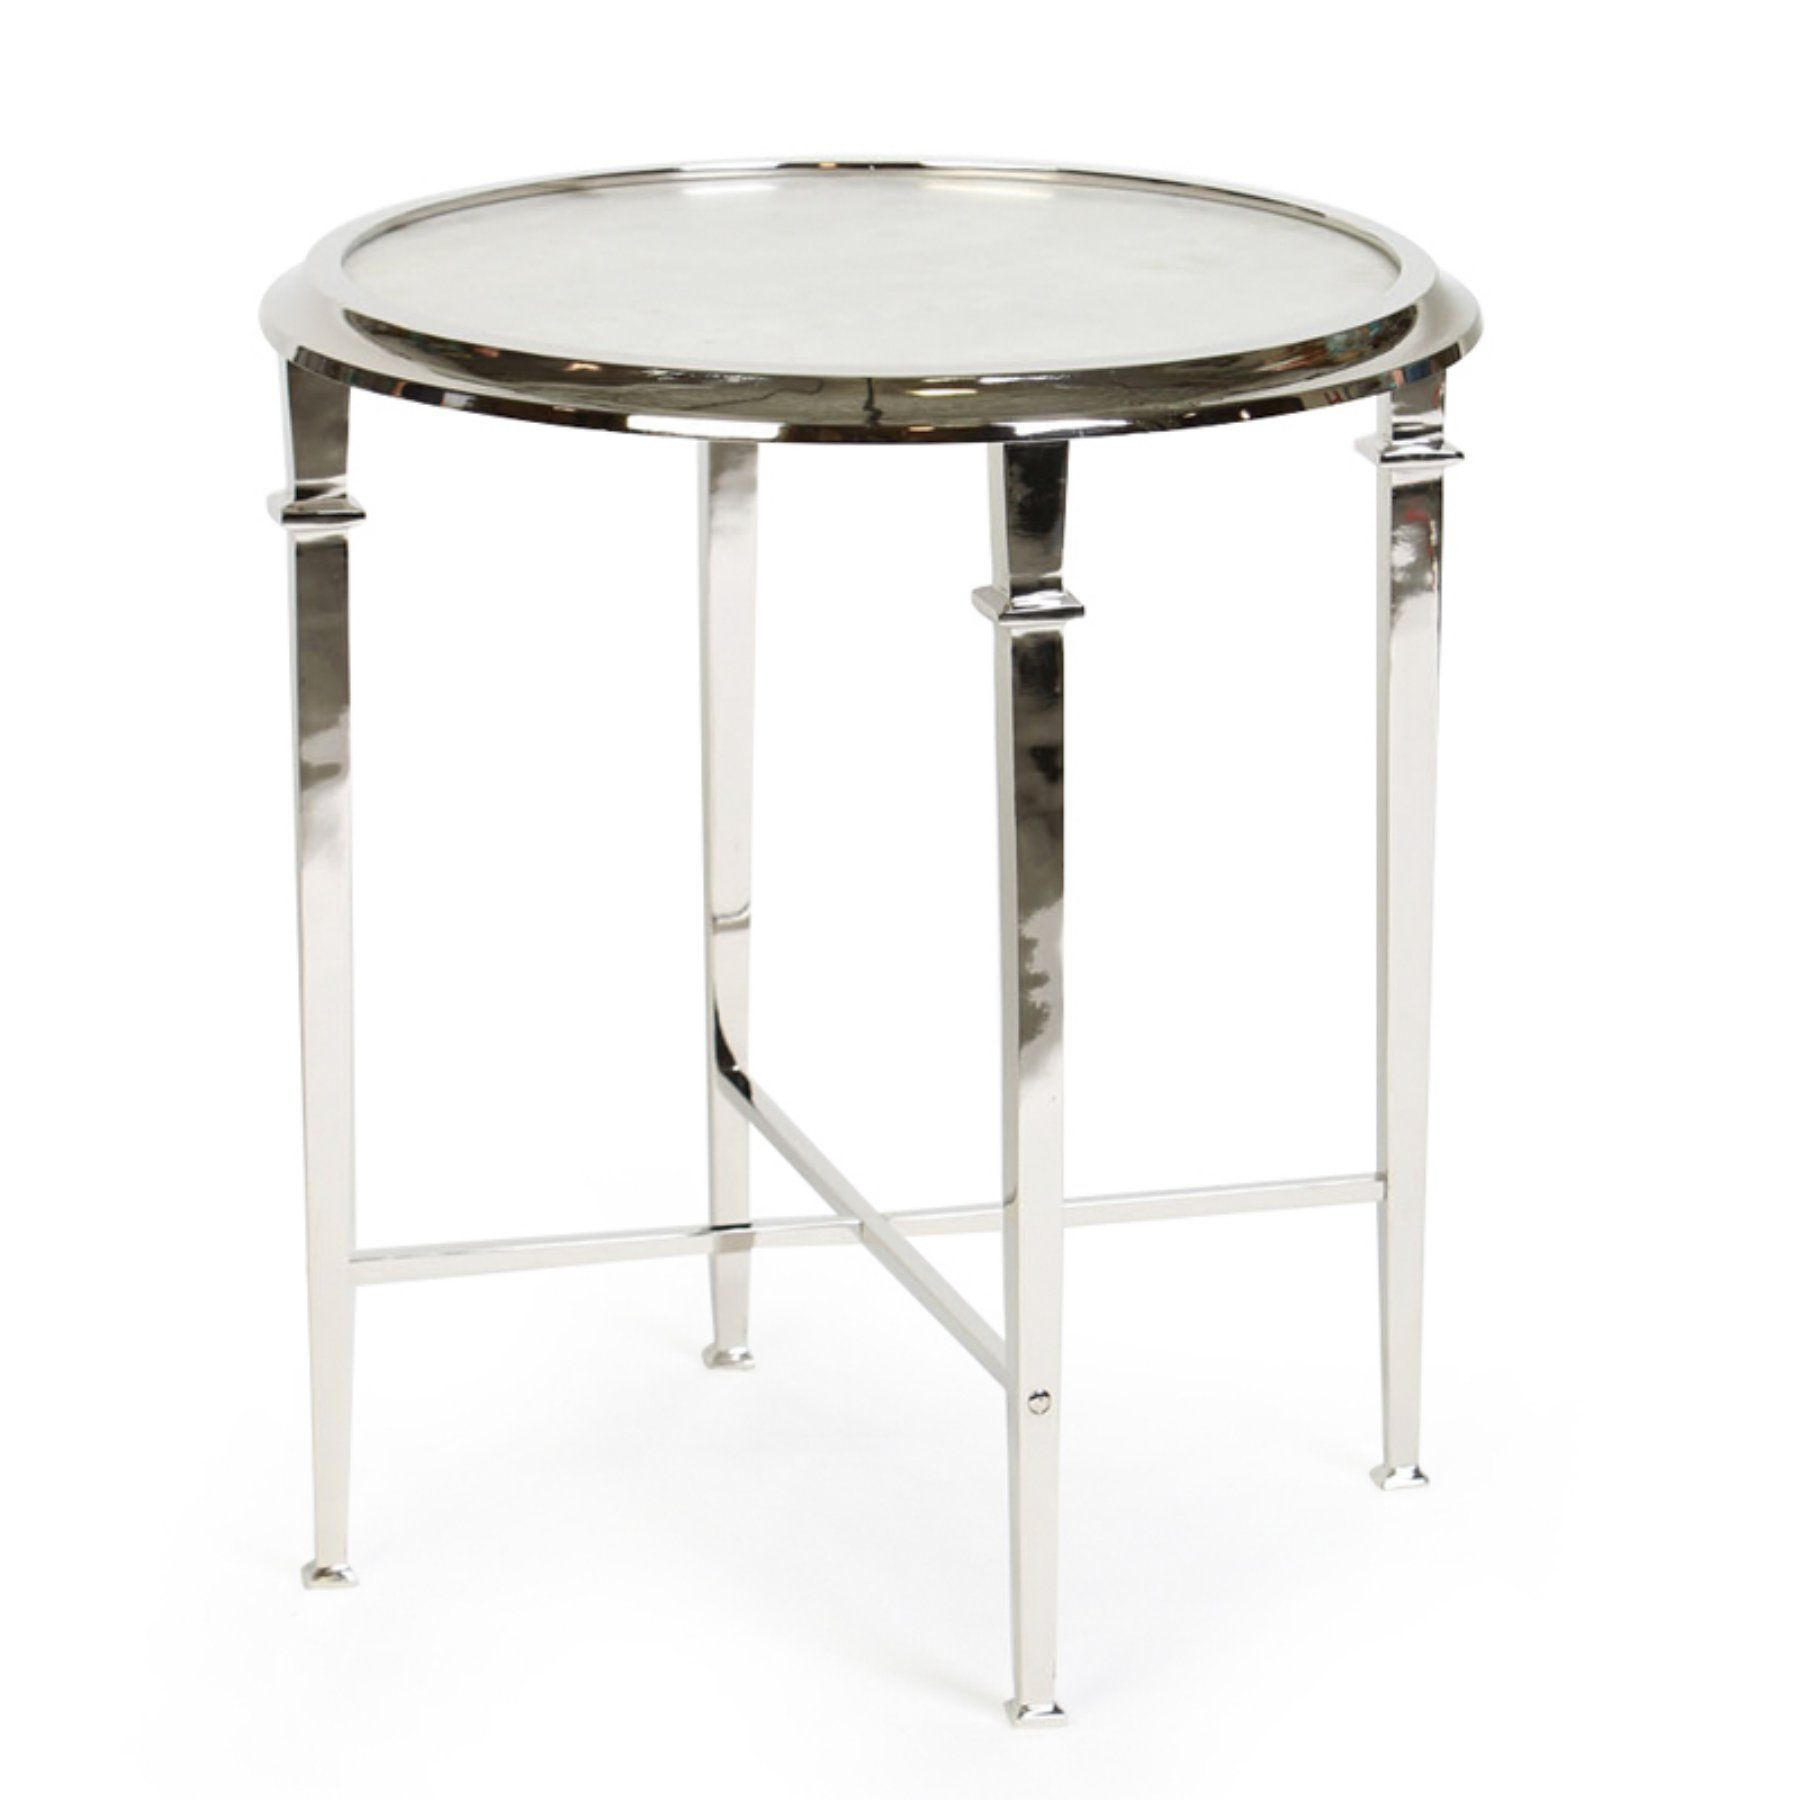 knox and harrison legged accent table polished nickel products console vintage patio sofa set clearance target threshold curtains chinese style lamp shades round coffee end tables